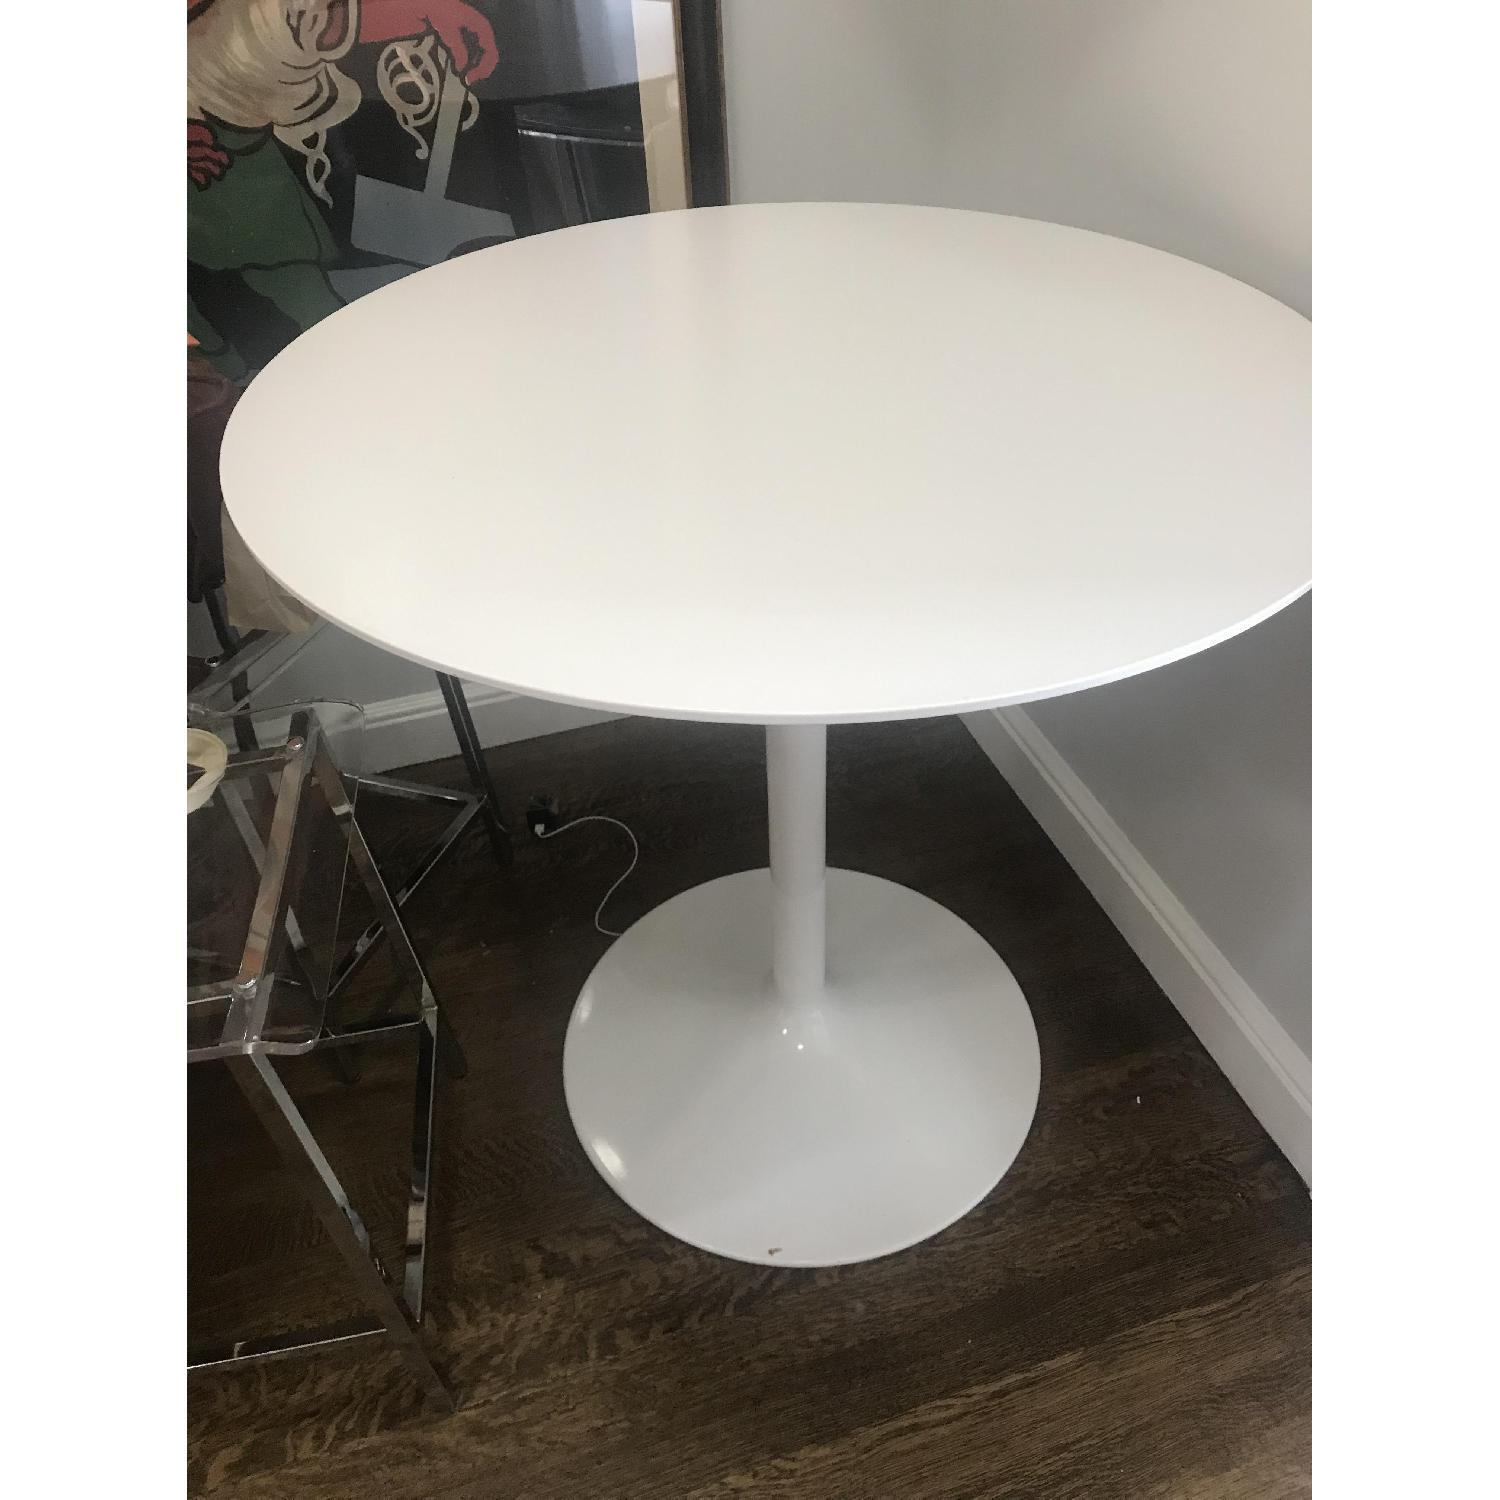 White Round Bar Table w/ 3 Clear Chairs - image-3